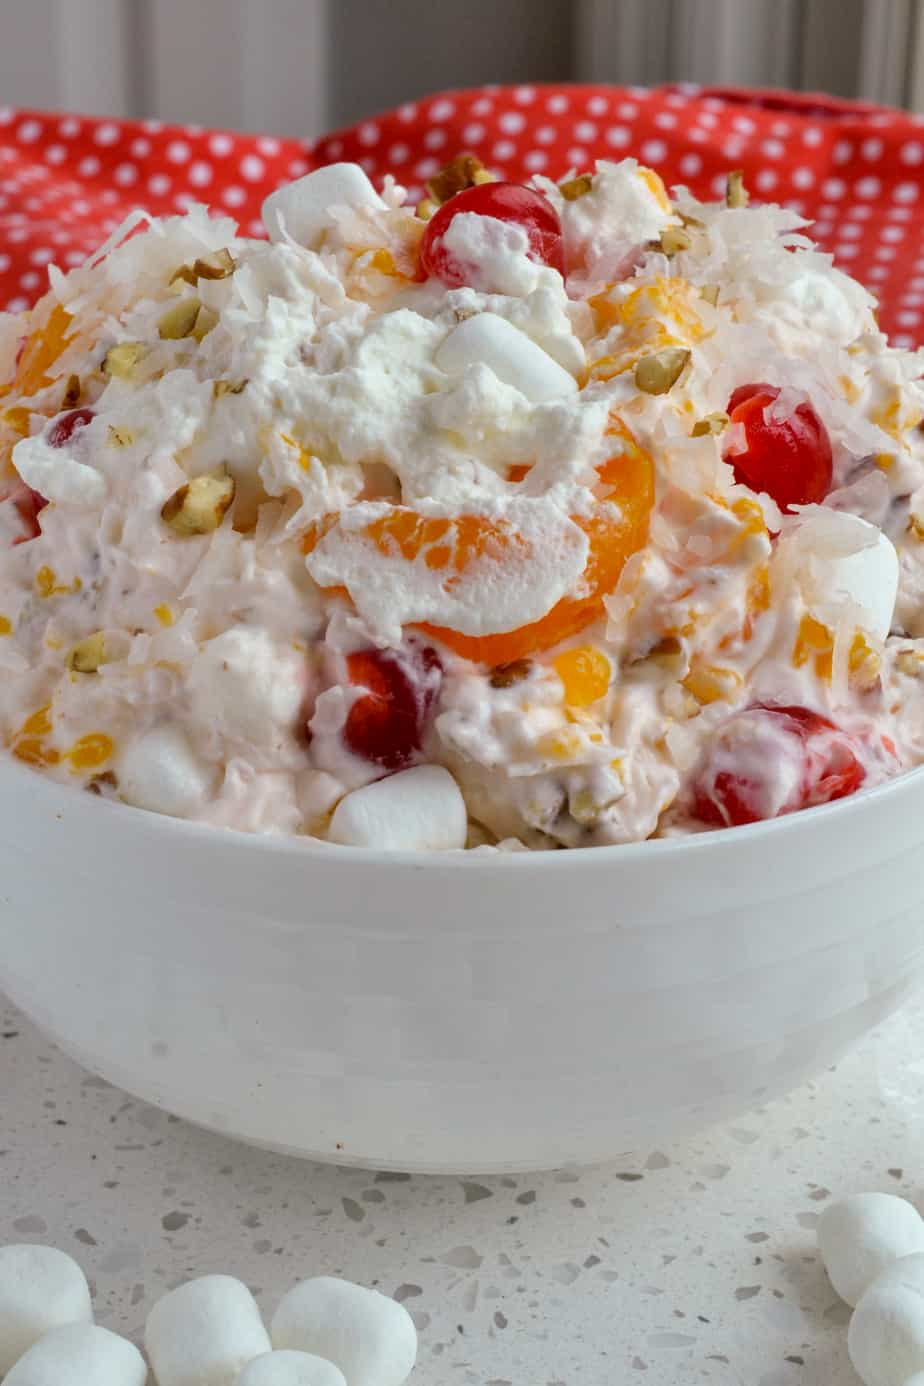 A bowl full of fruit, pecans, coconut, marshmallows, and whipped cream mixed together.